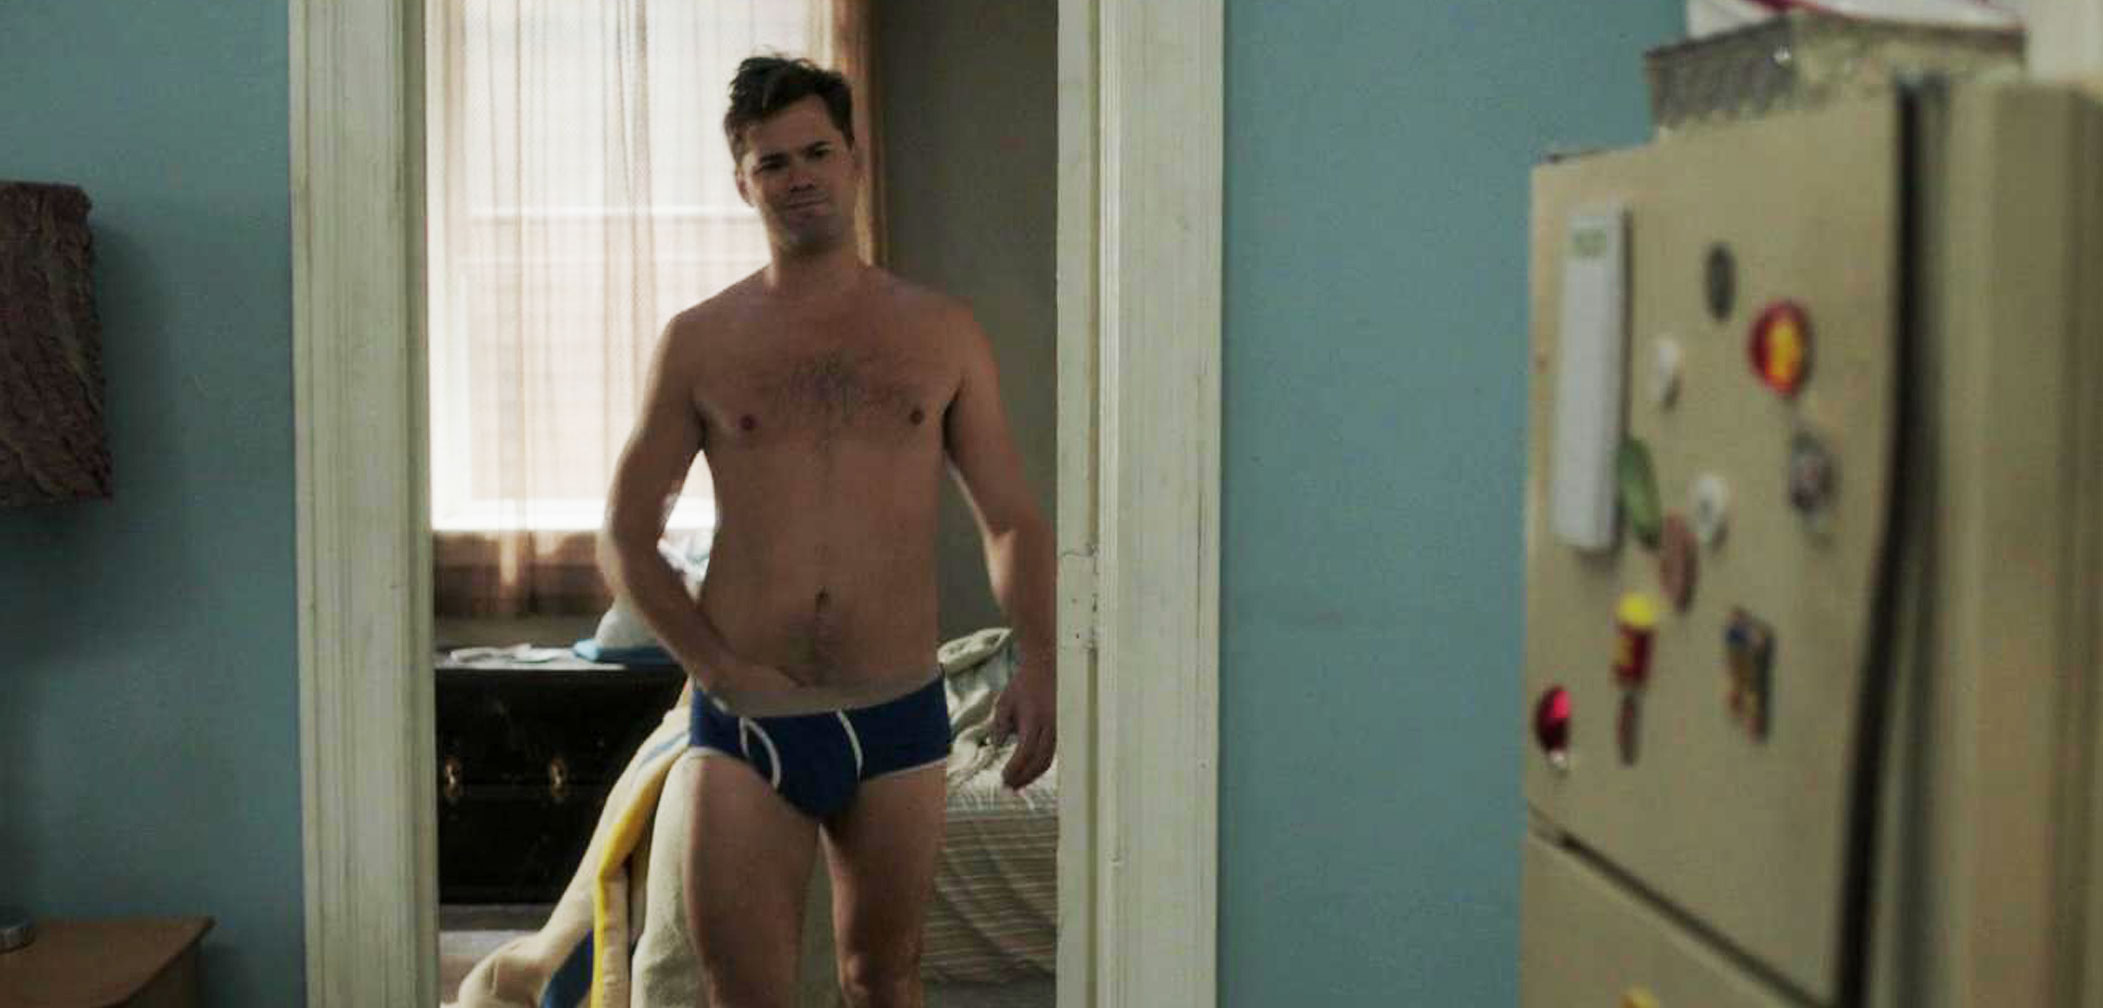 Andrew Rannells cock sock, HBO, Girls, briefs, sexy, shirtless